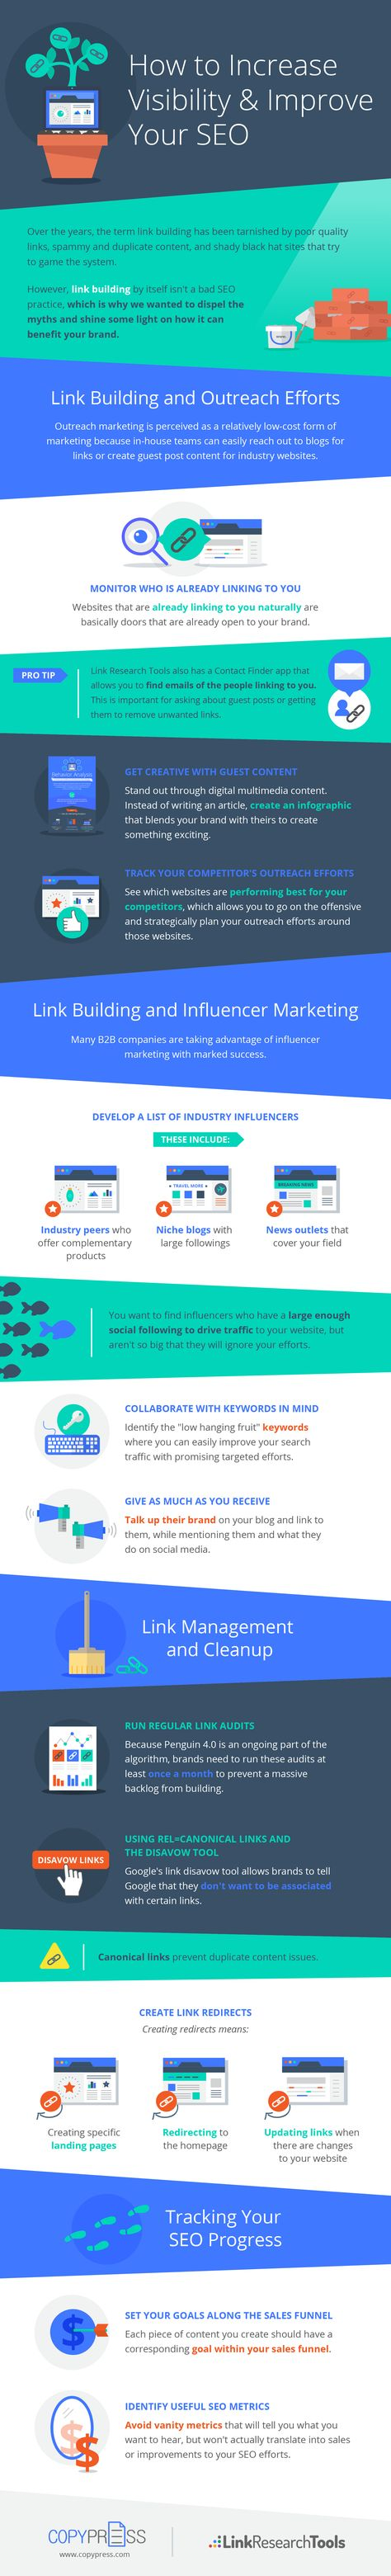 How to Improve Visibility and SEO [Infographic]